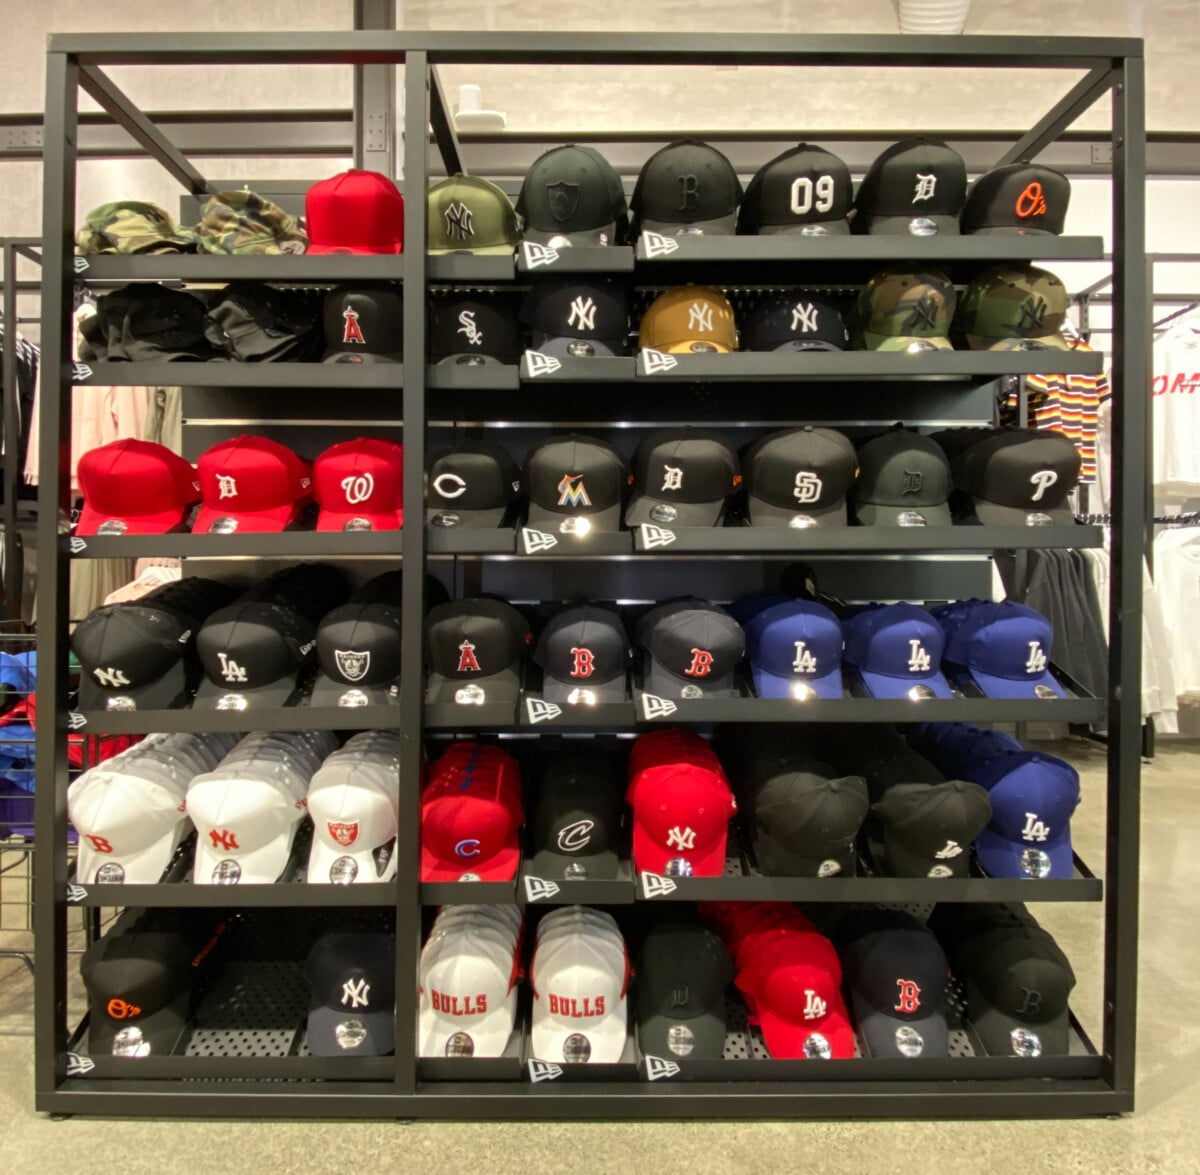 Large metal framed hat display stand with angled mesh shelves